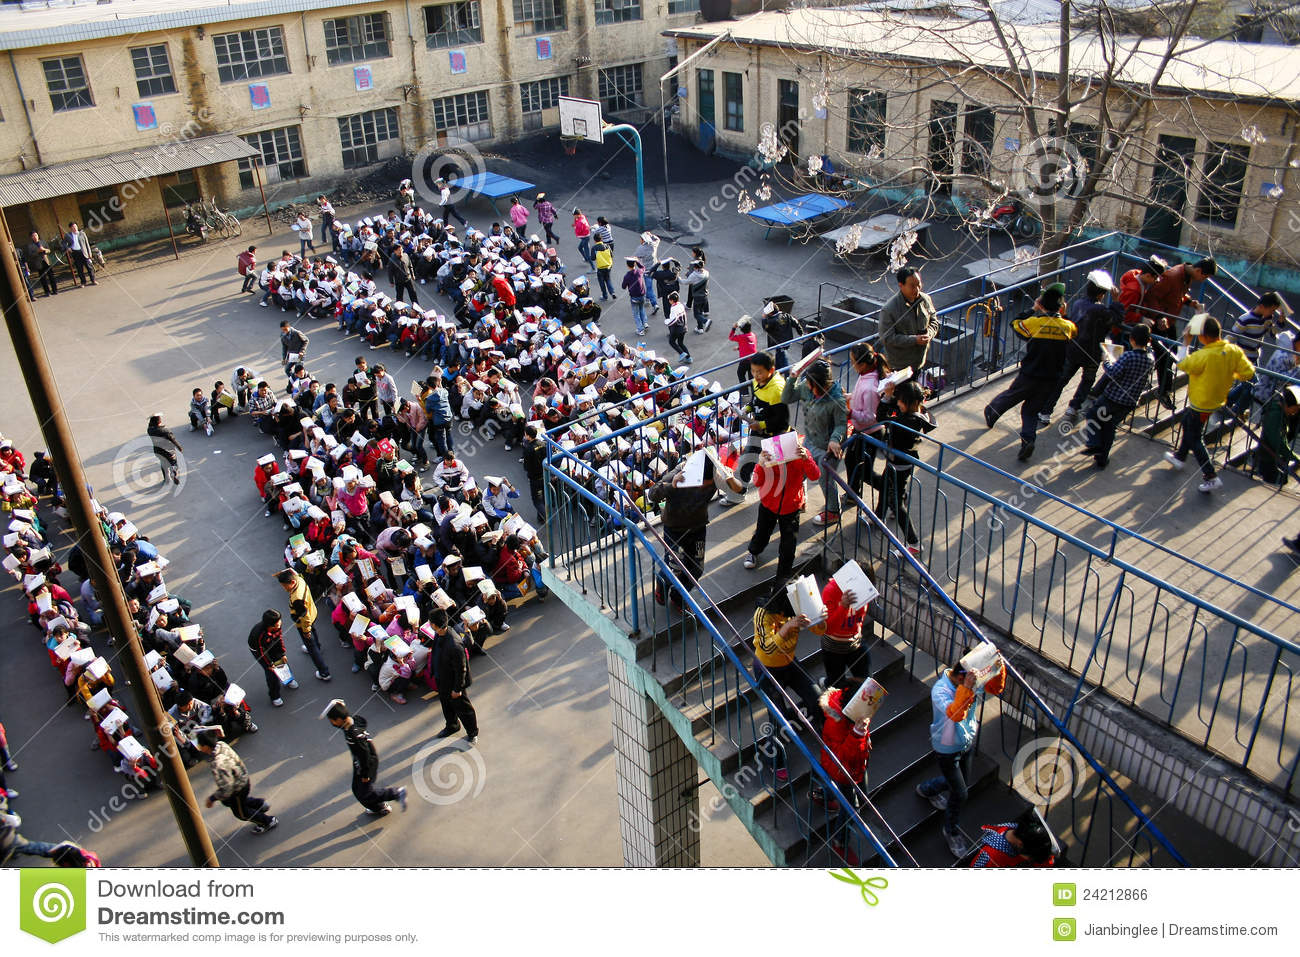 Paper Binders Stock Image also Children Riding Bikes Their Way To School Mother Wearing Helmets Background additionally H furthermore Held Evacuation Drills moreover . on classroom objects